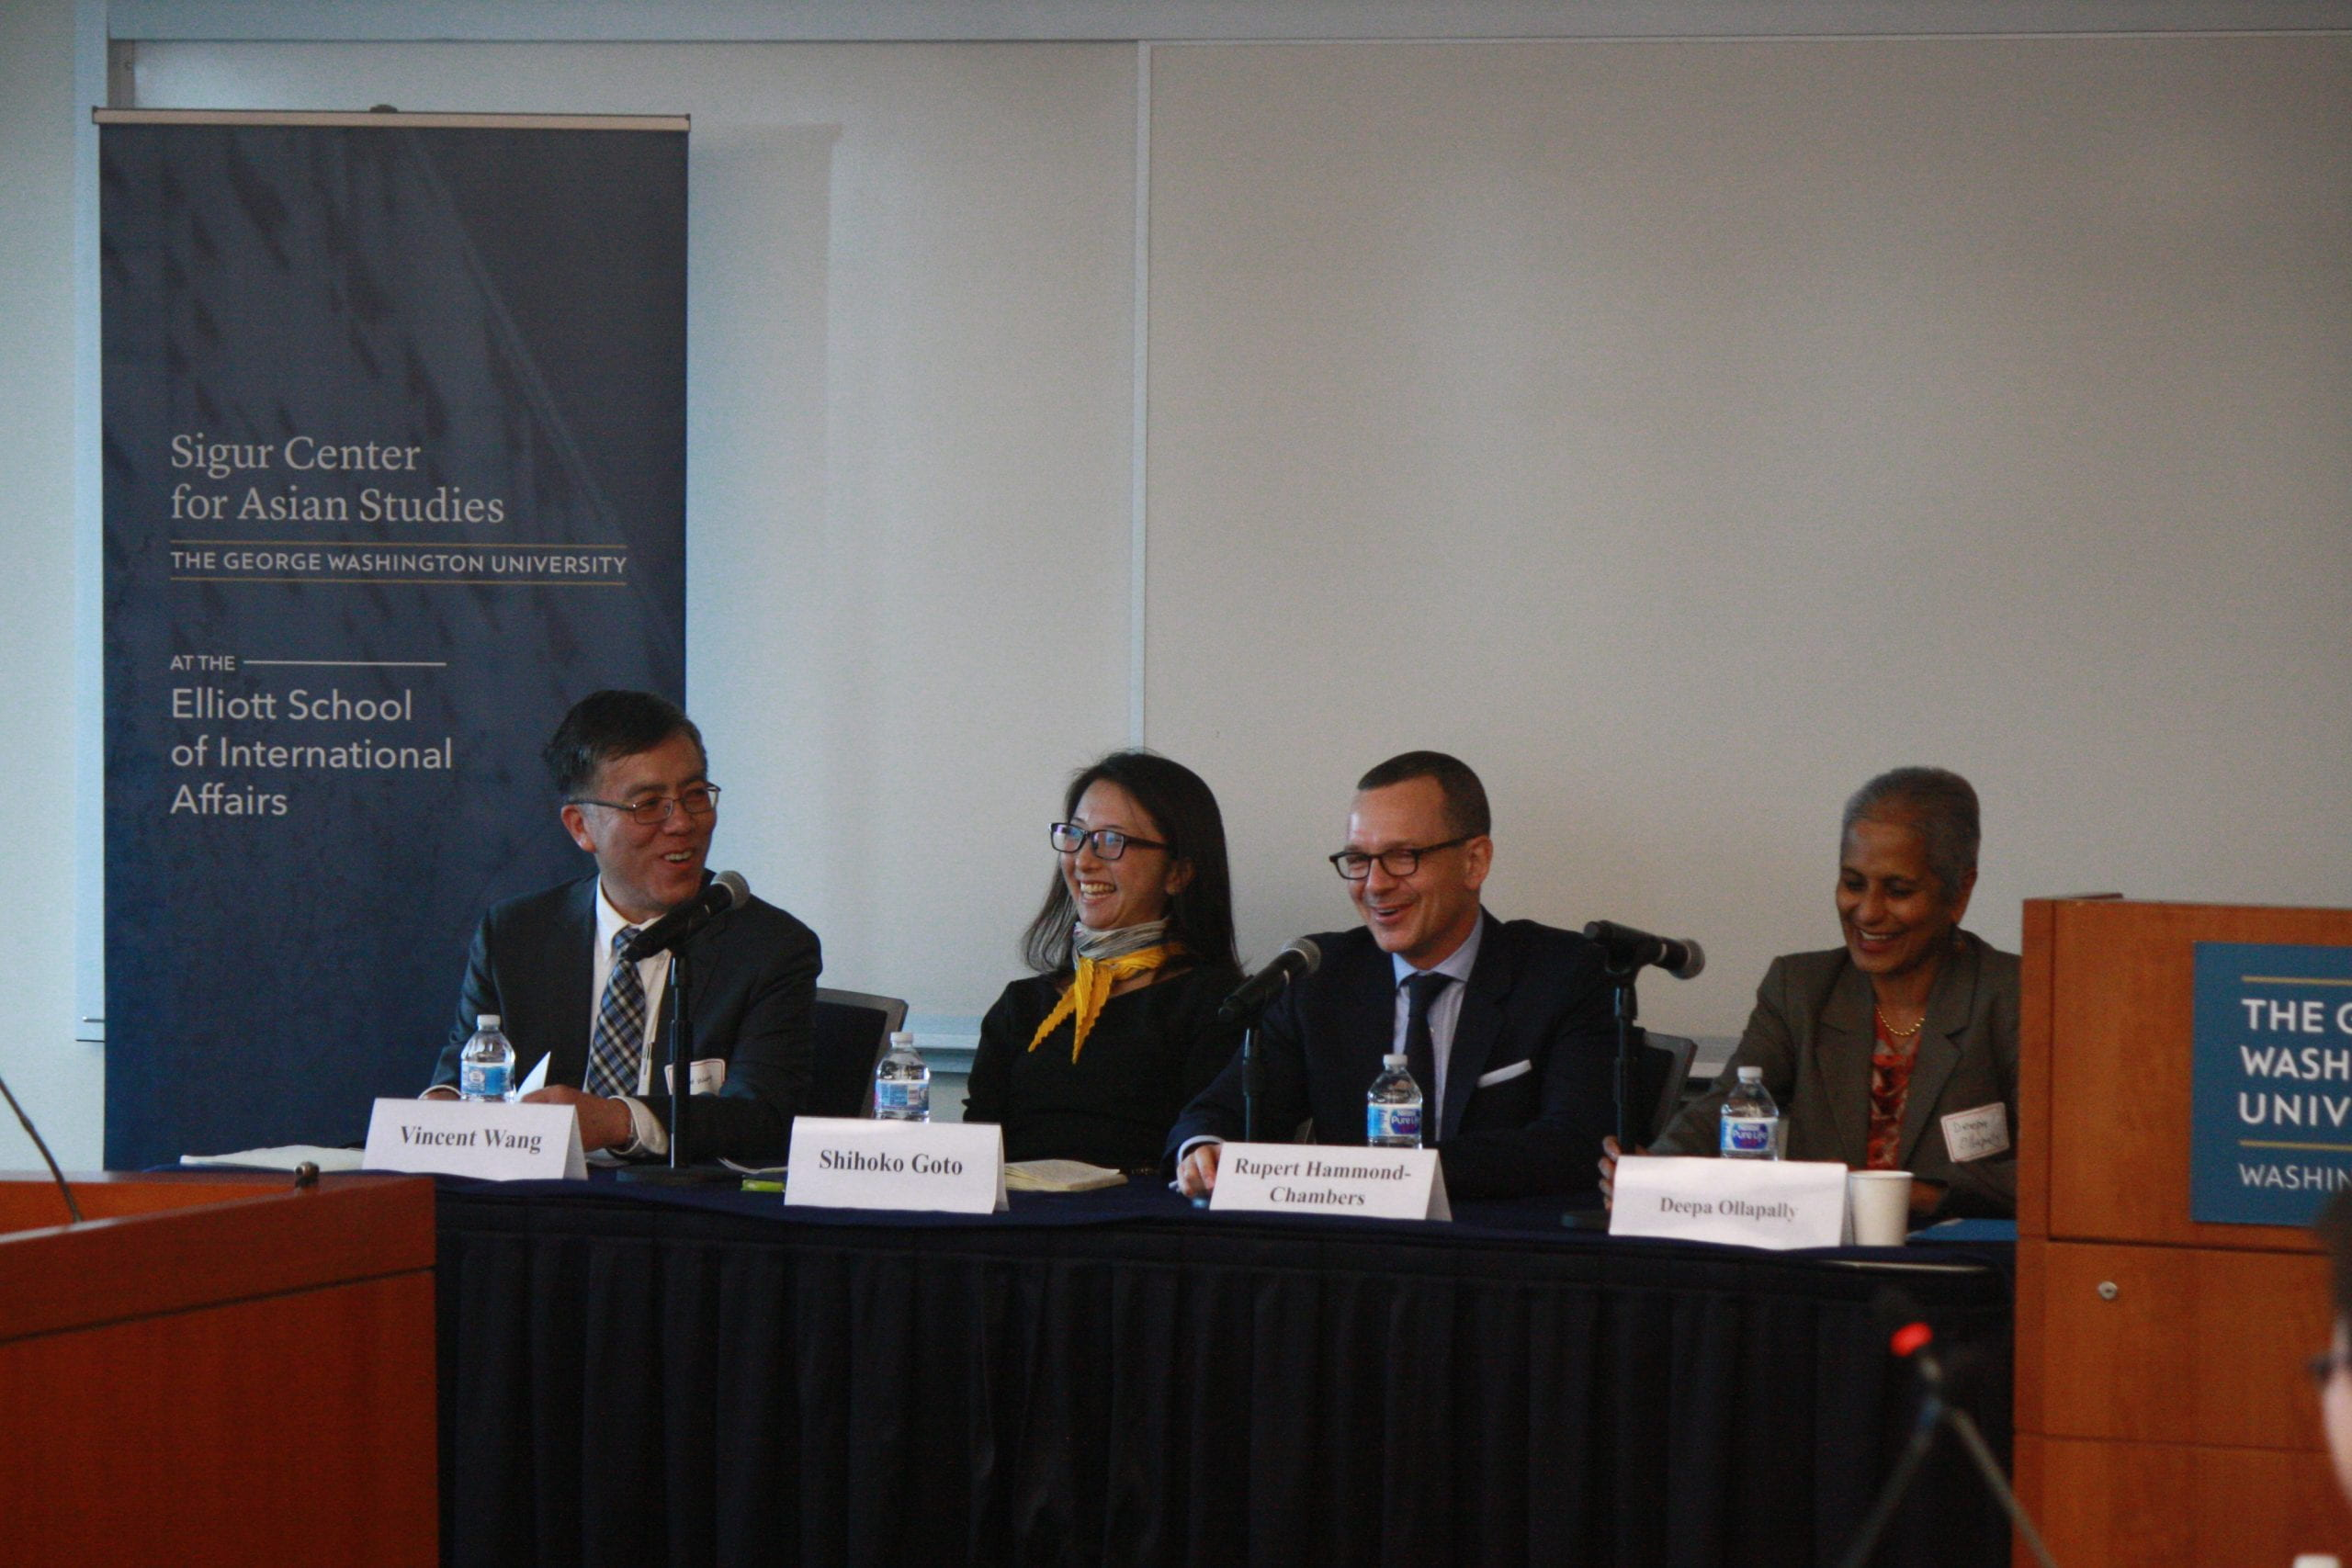 """Expert panelists discussing trade, investment, and services in the """"US-Taiwan Economic Relations: Domestic and International Drivers"""" conference held on December 5, 2017. From left to right: Vincent Wang, Shihoko Goto, Rupert Hammond-Chambers, and Deepa Ollapally."""